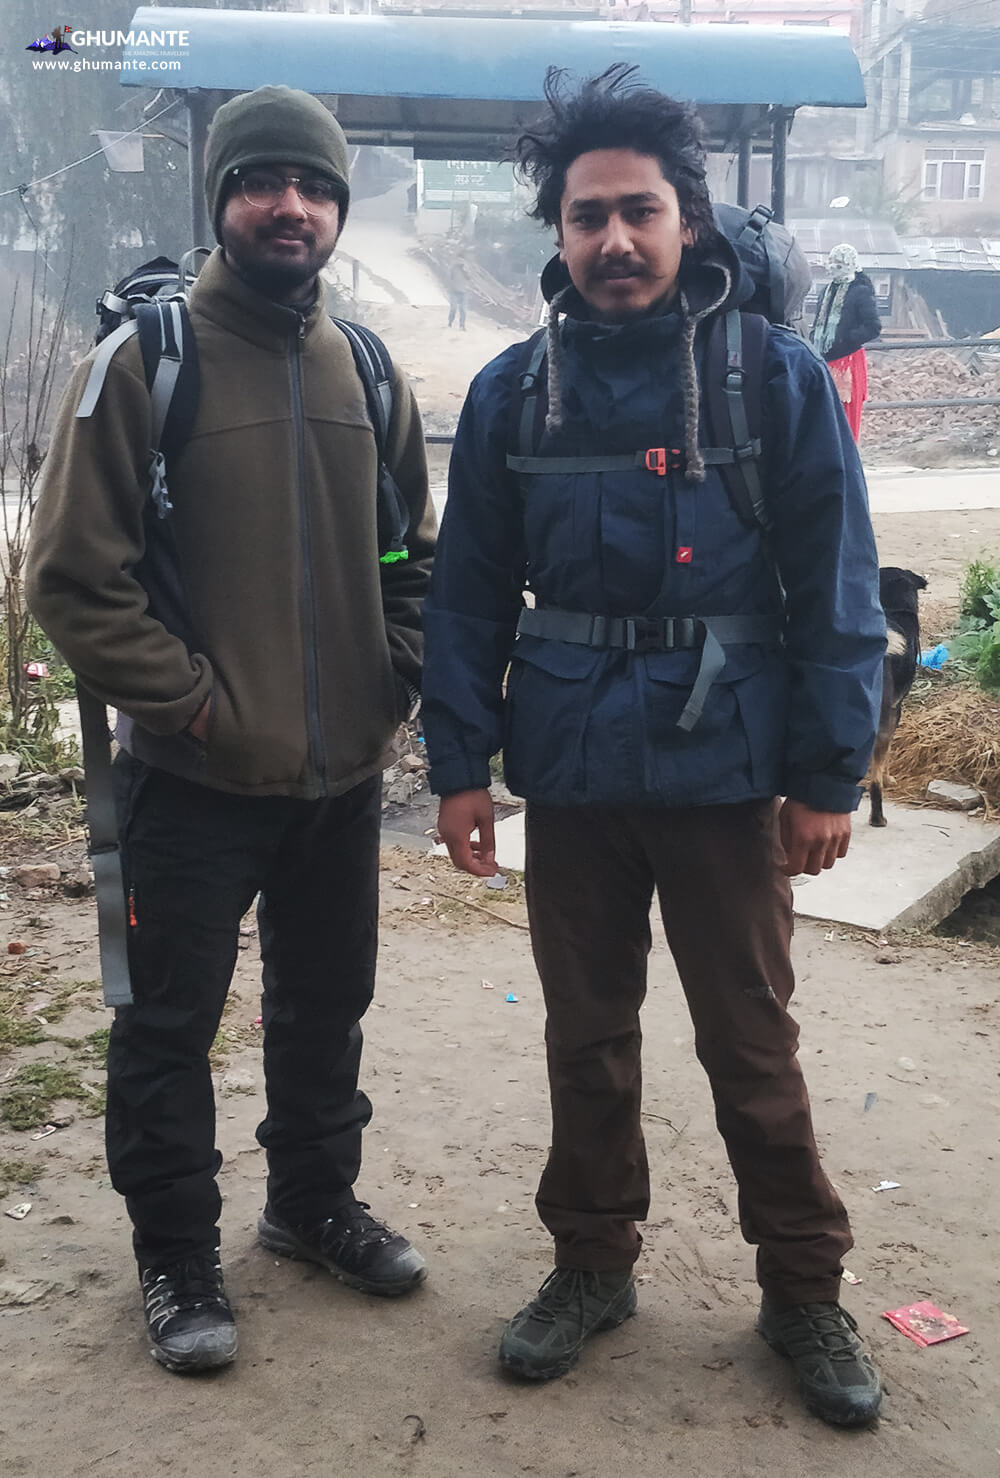 Getting ready to explore Shailung, at 28 Kilo, Dhulikhel.